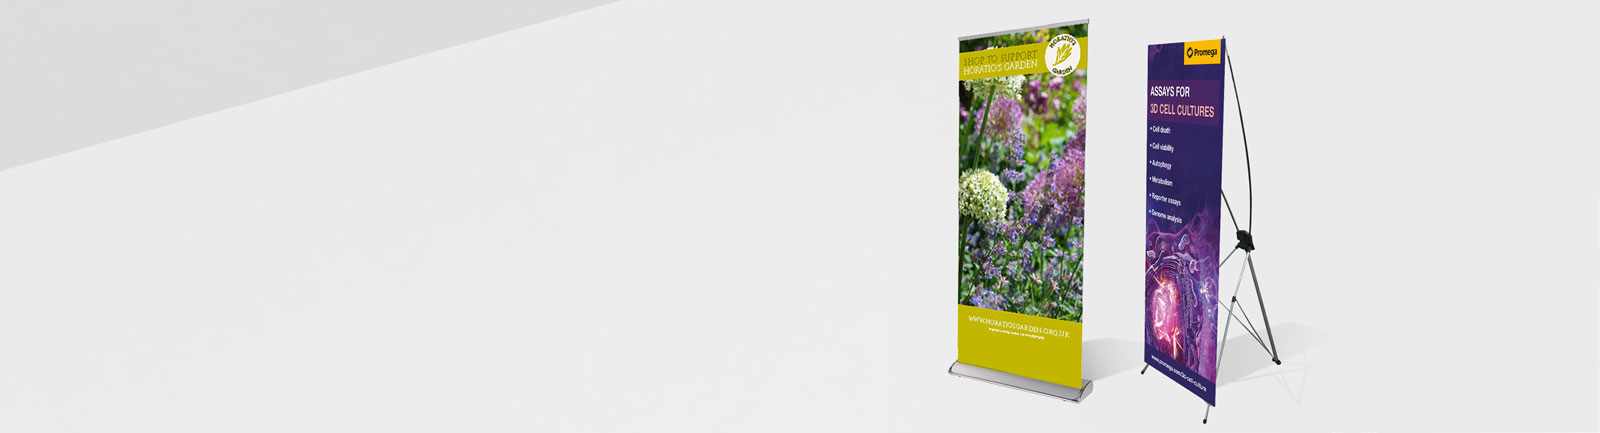 Cheap printed Roller Banners, pop up banner display UK